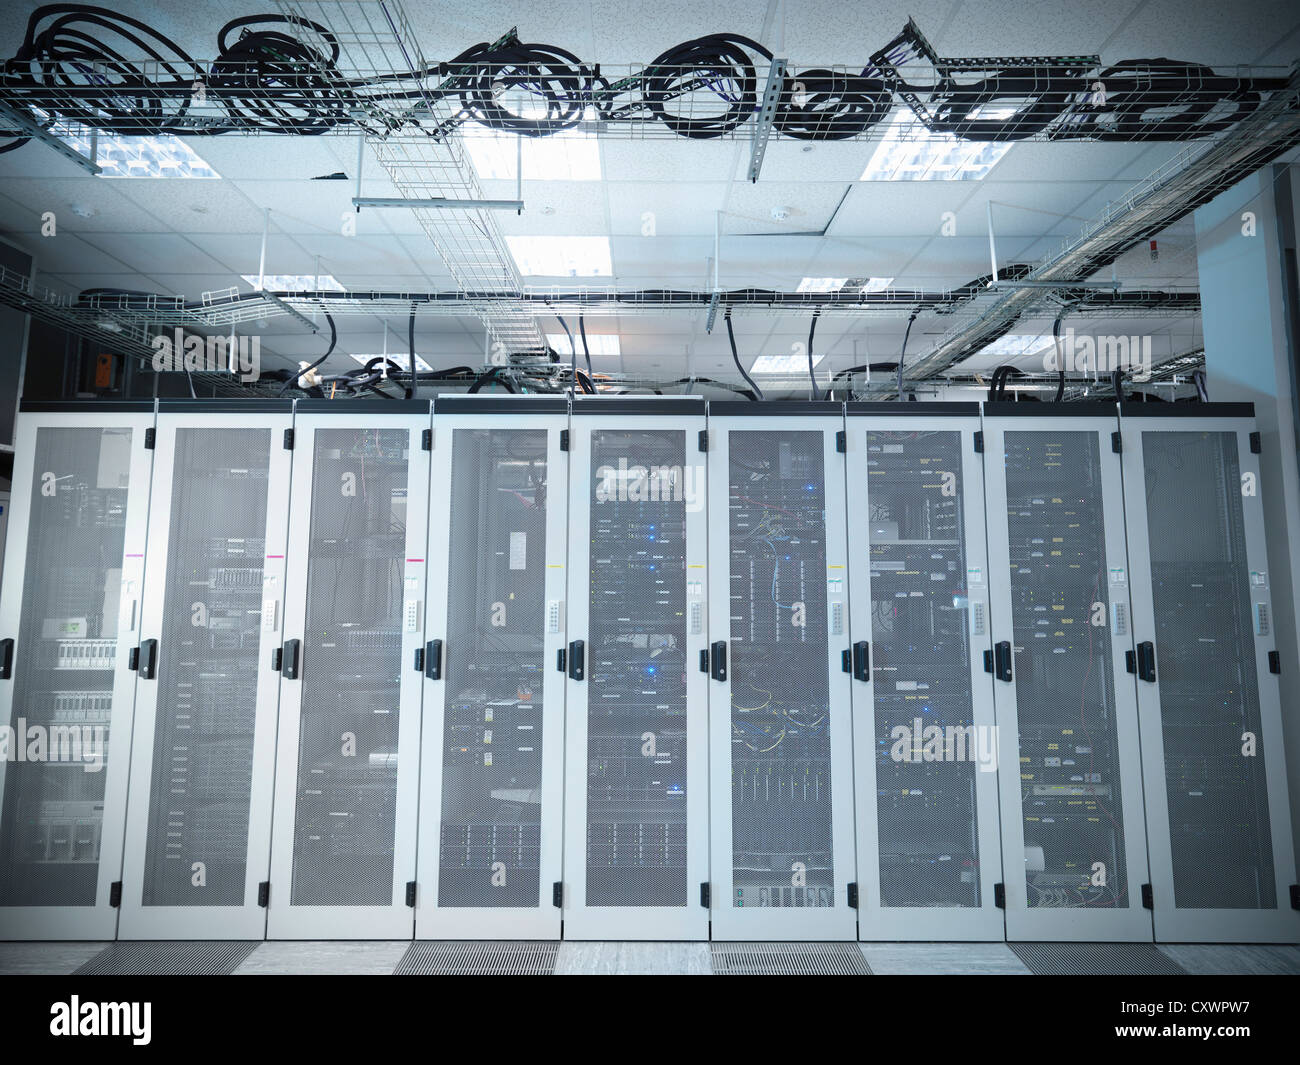 Closets in server room - Stock Image